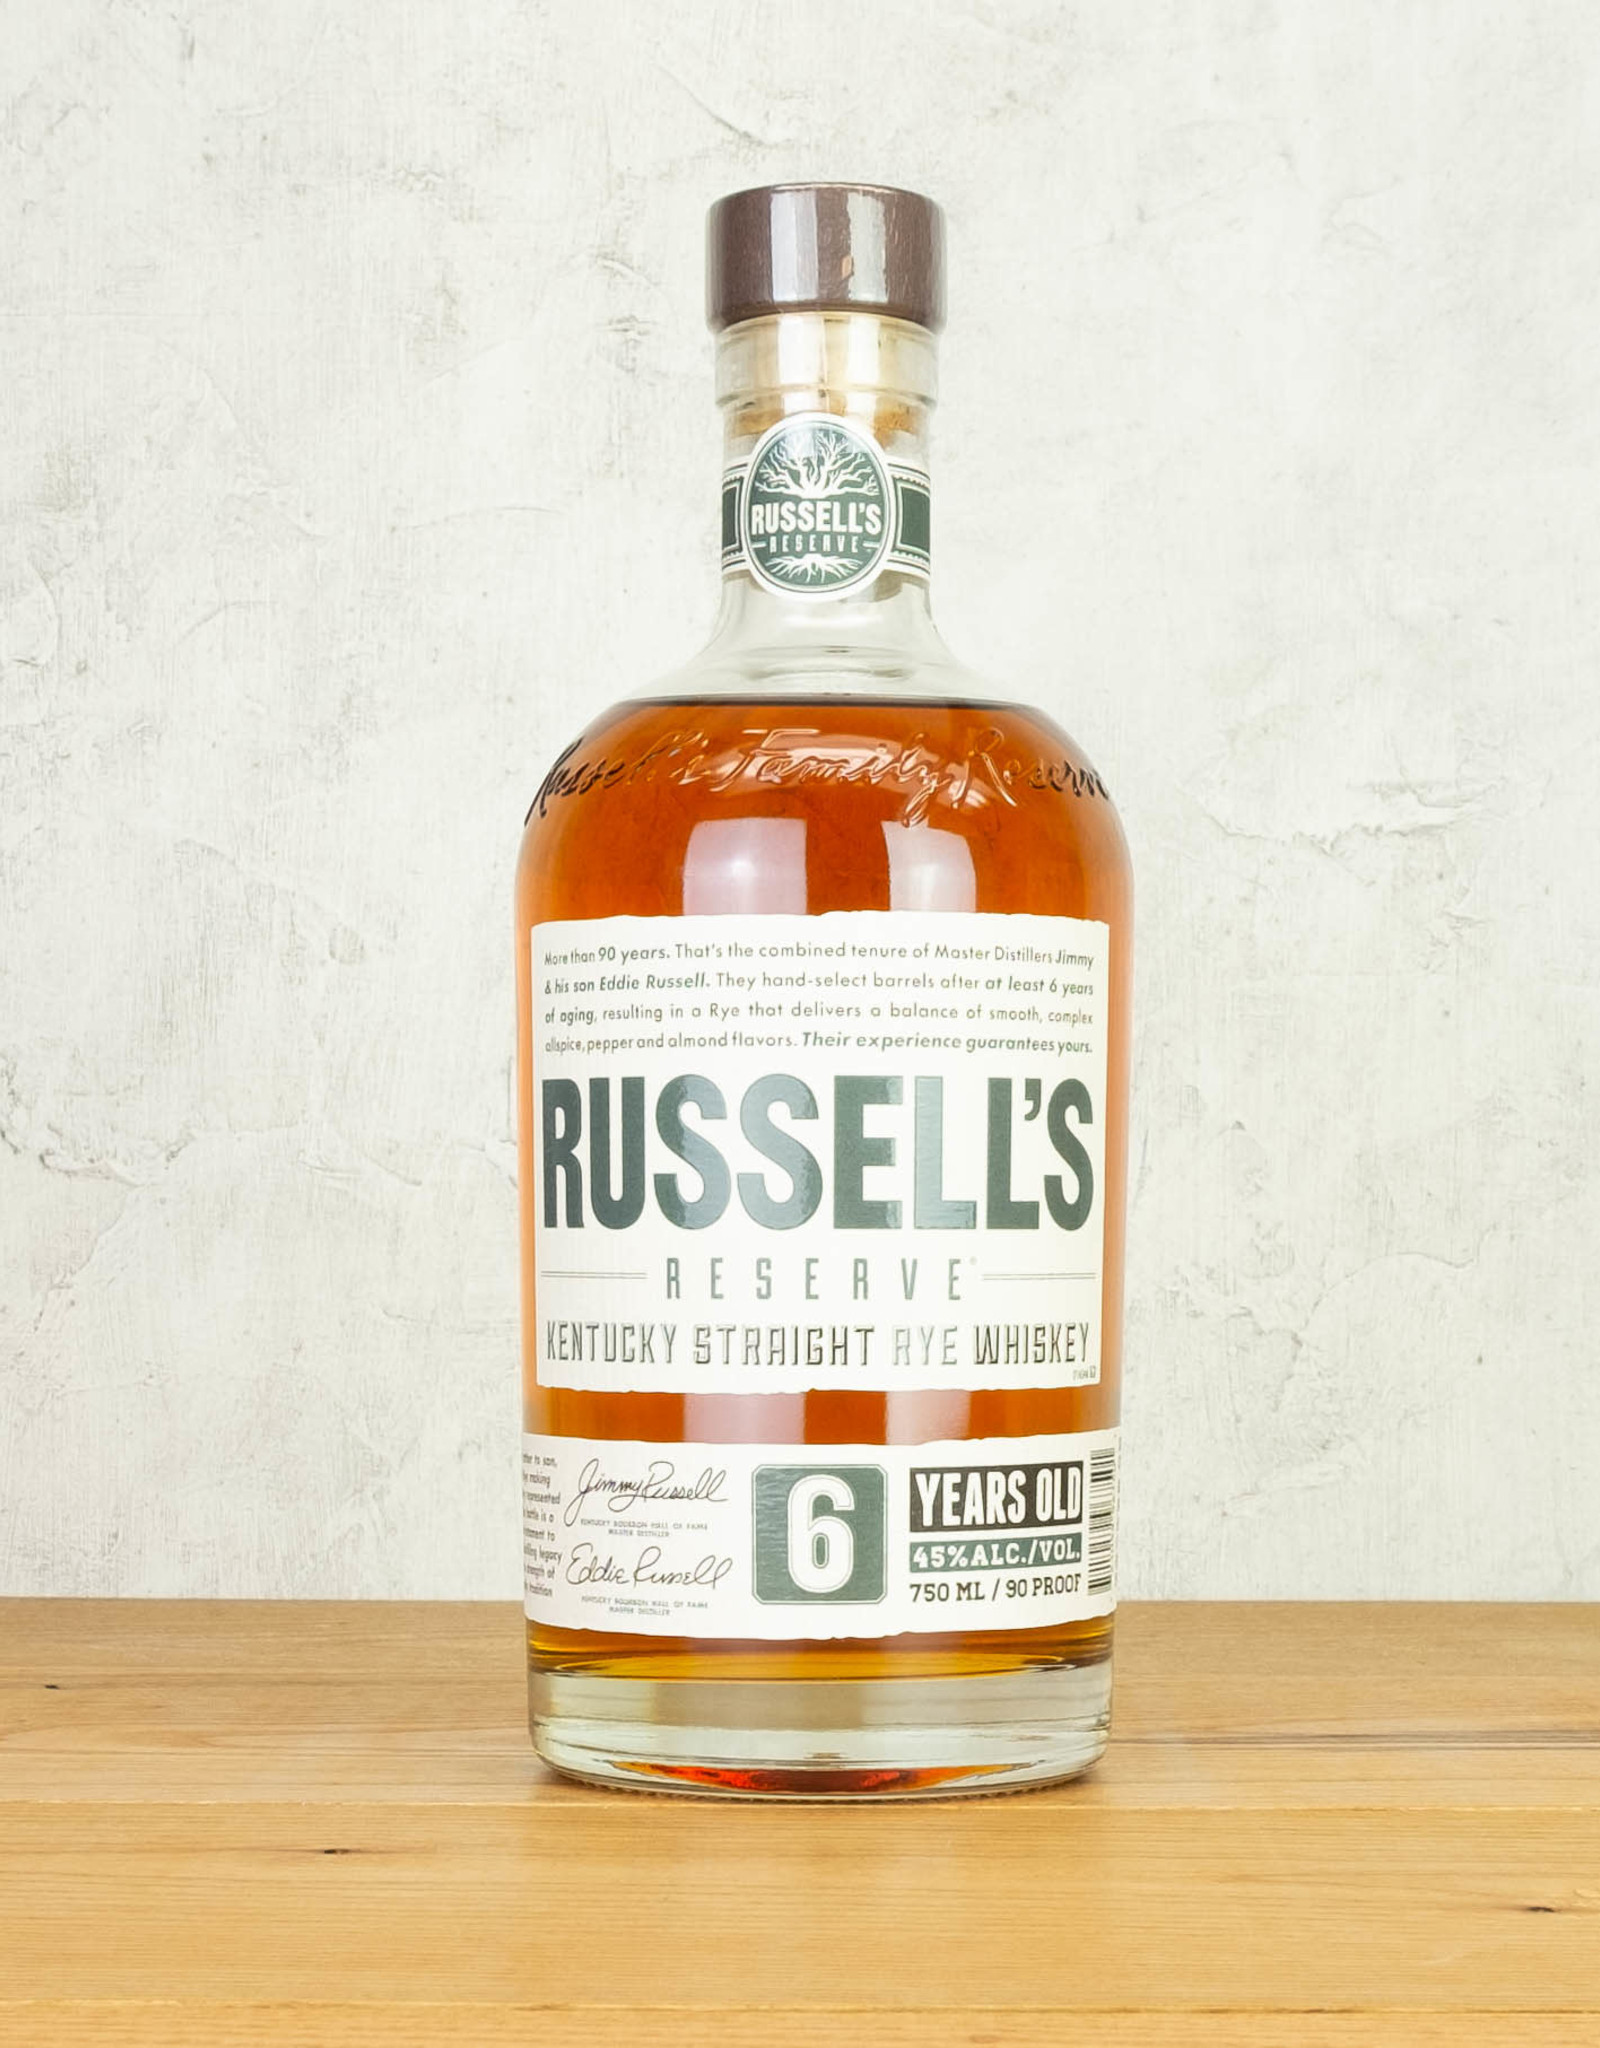 Russell's Reserve 6 Year Rye